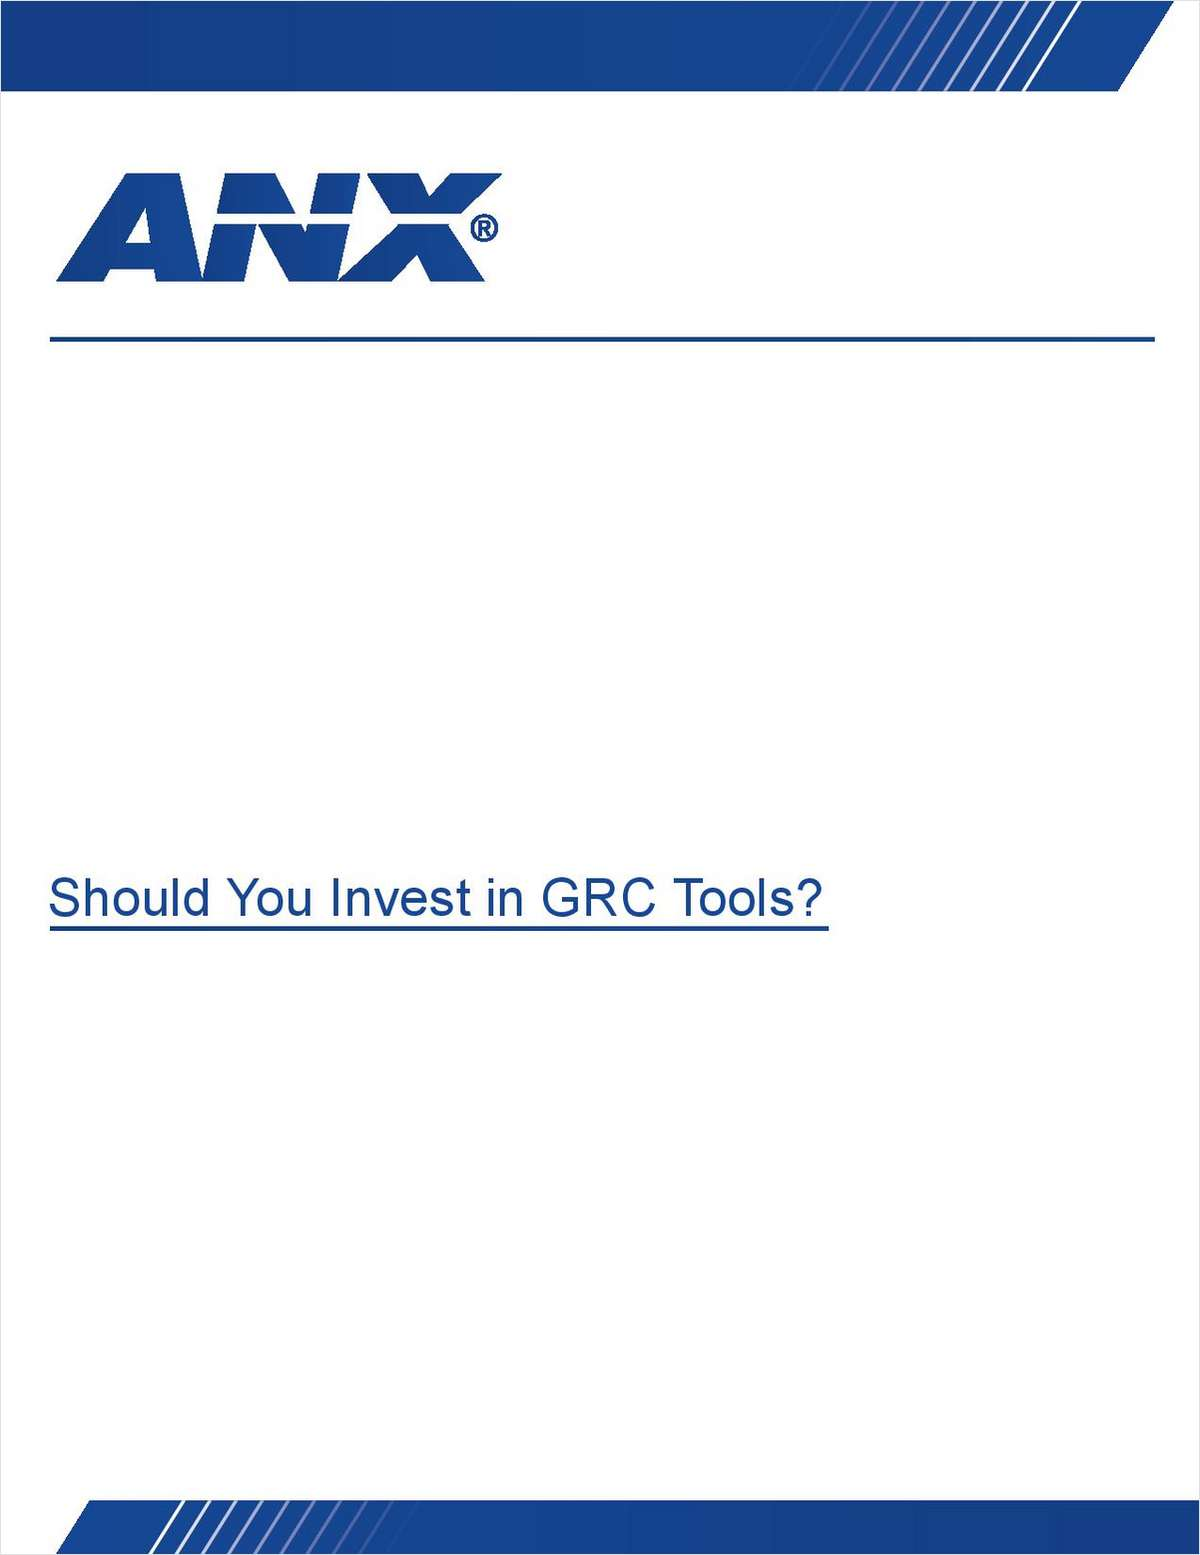 Should You Invest in GRC Tools?